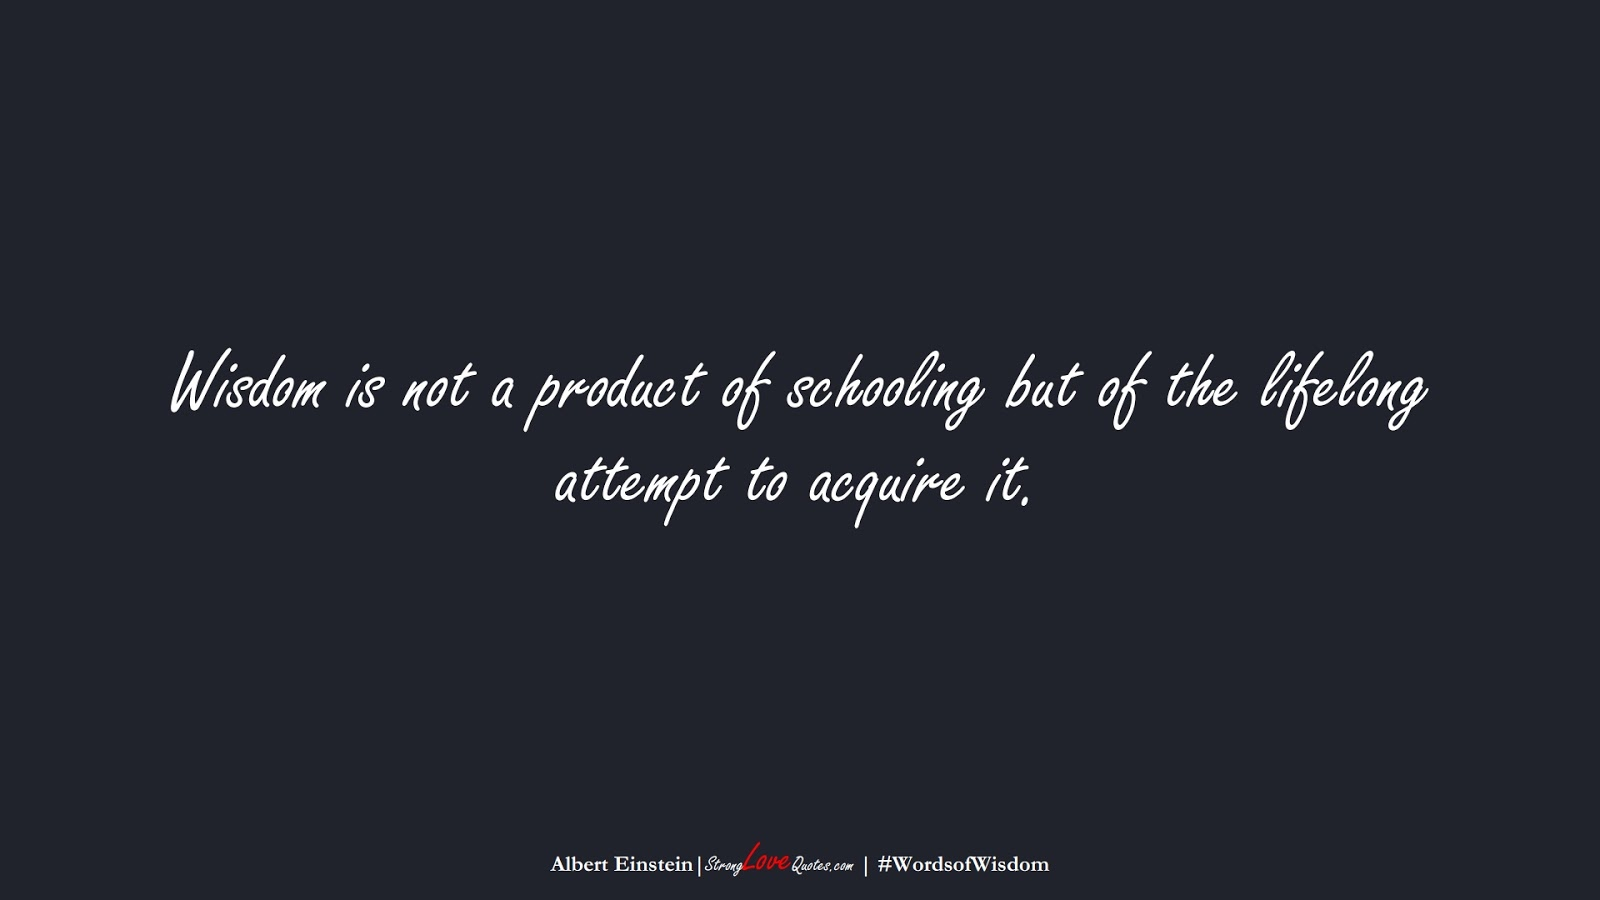 Wisdom is not a product of schooling but of the lifelong attempt to acquire it. (Albert Einstein);  #WordsofWisdom